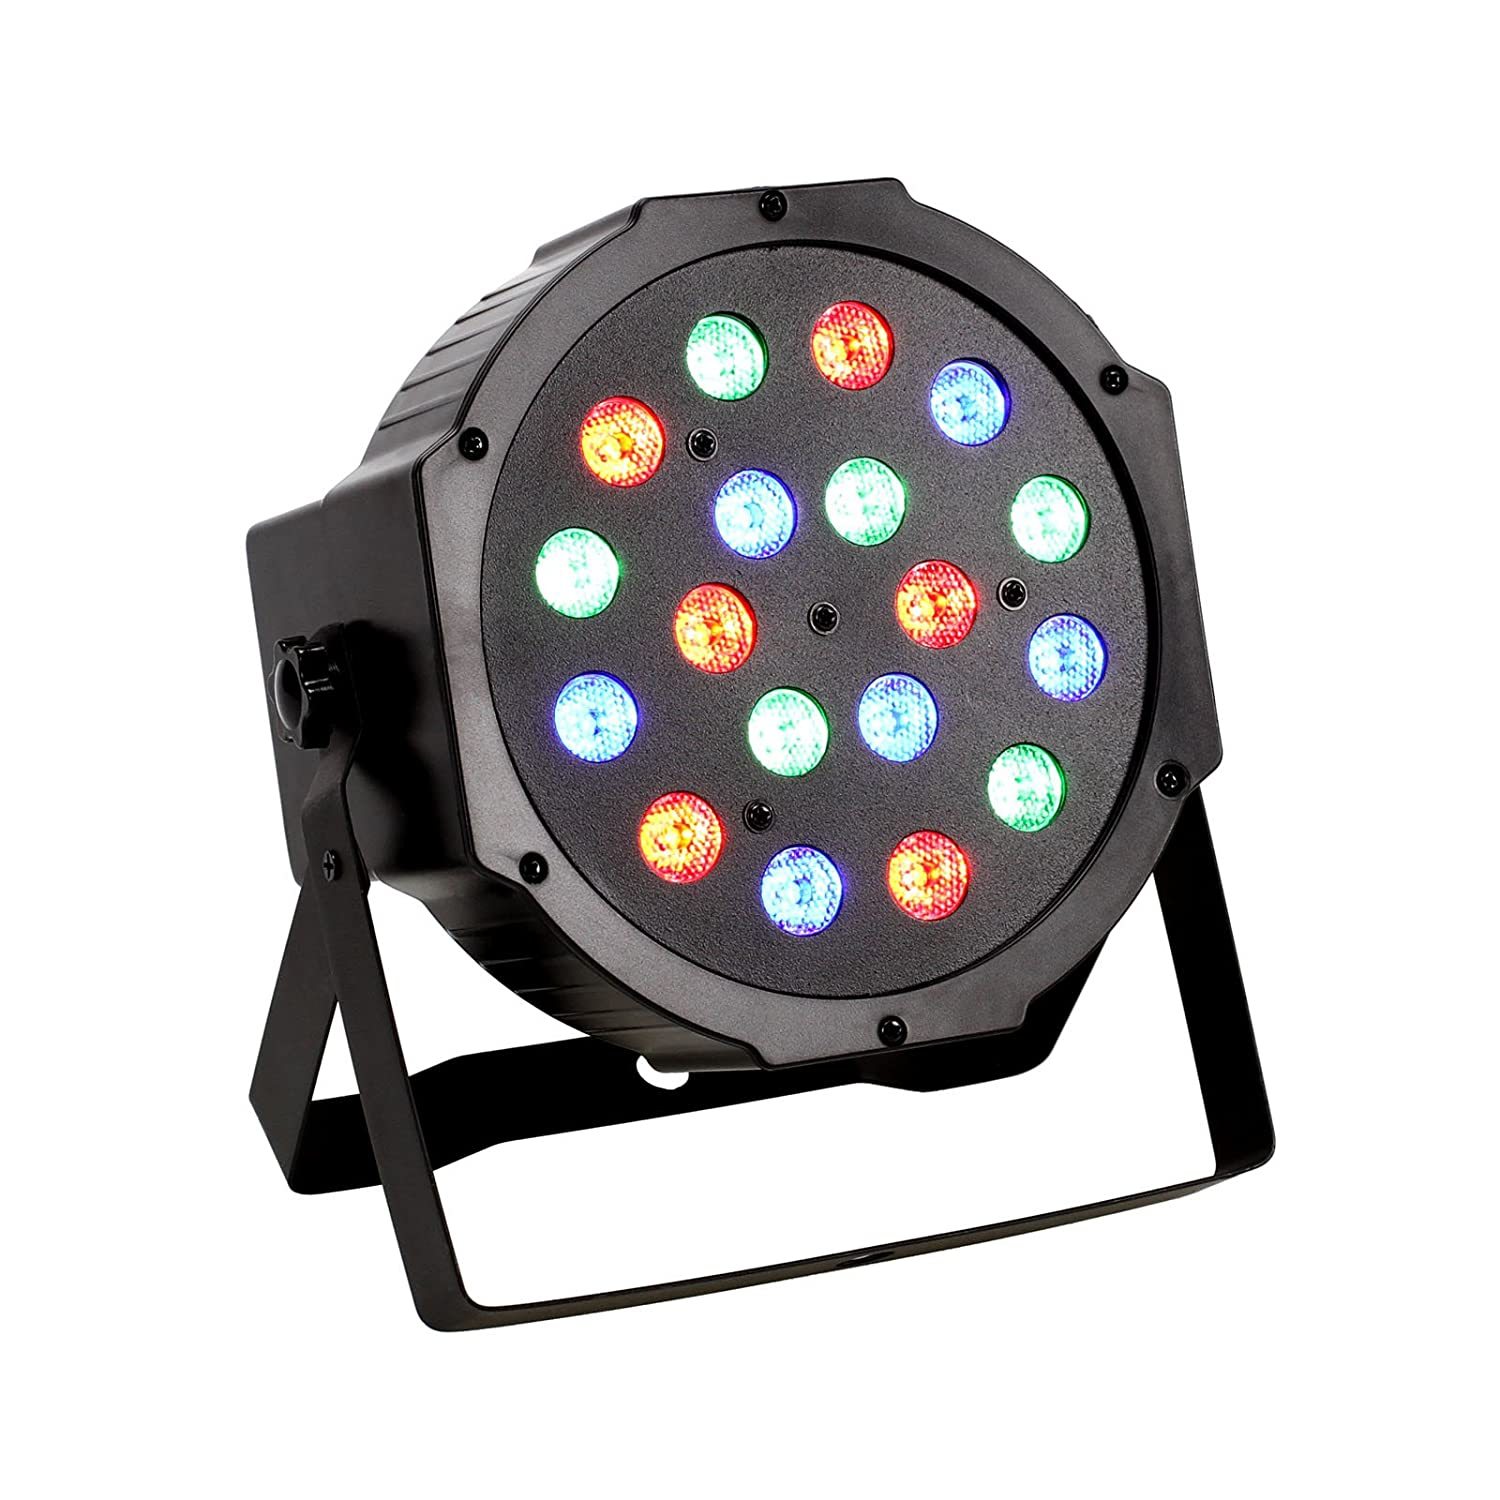 TSSS RGB Led Par light 18 Leds DMX512 Color Mixing Wash Can Stage Disco DJ Wedding Family Birthday Celebration Event Party Lighting Effect Amazon.co.uk ...  sc 1 st  Amazon UK & TSSS RGB Led Par light 18 Leds DMX512 Color Mixing Wash Can Stage ... azcodes.com